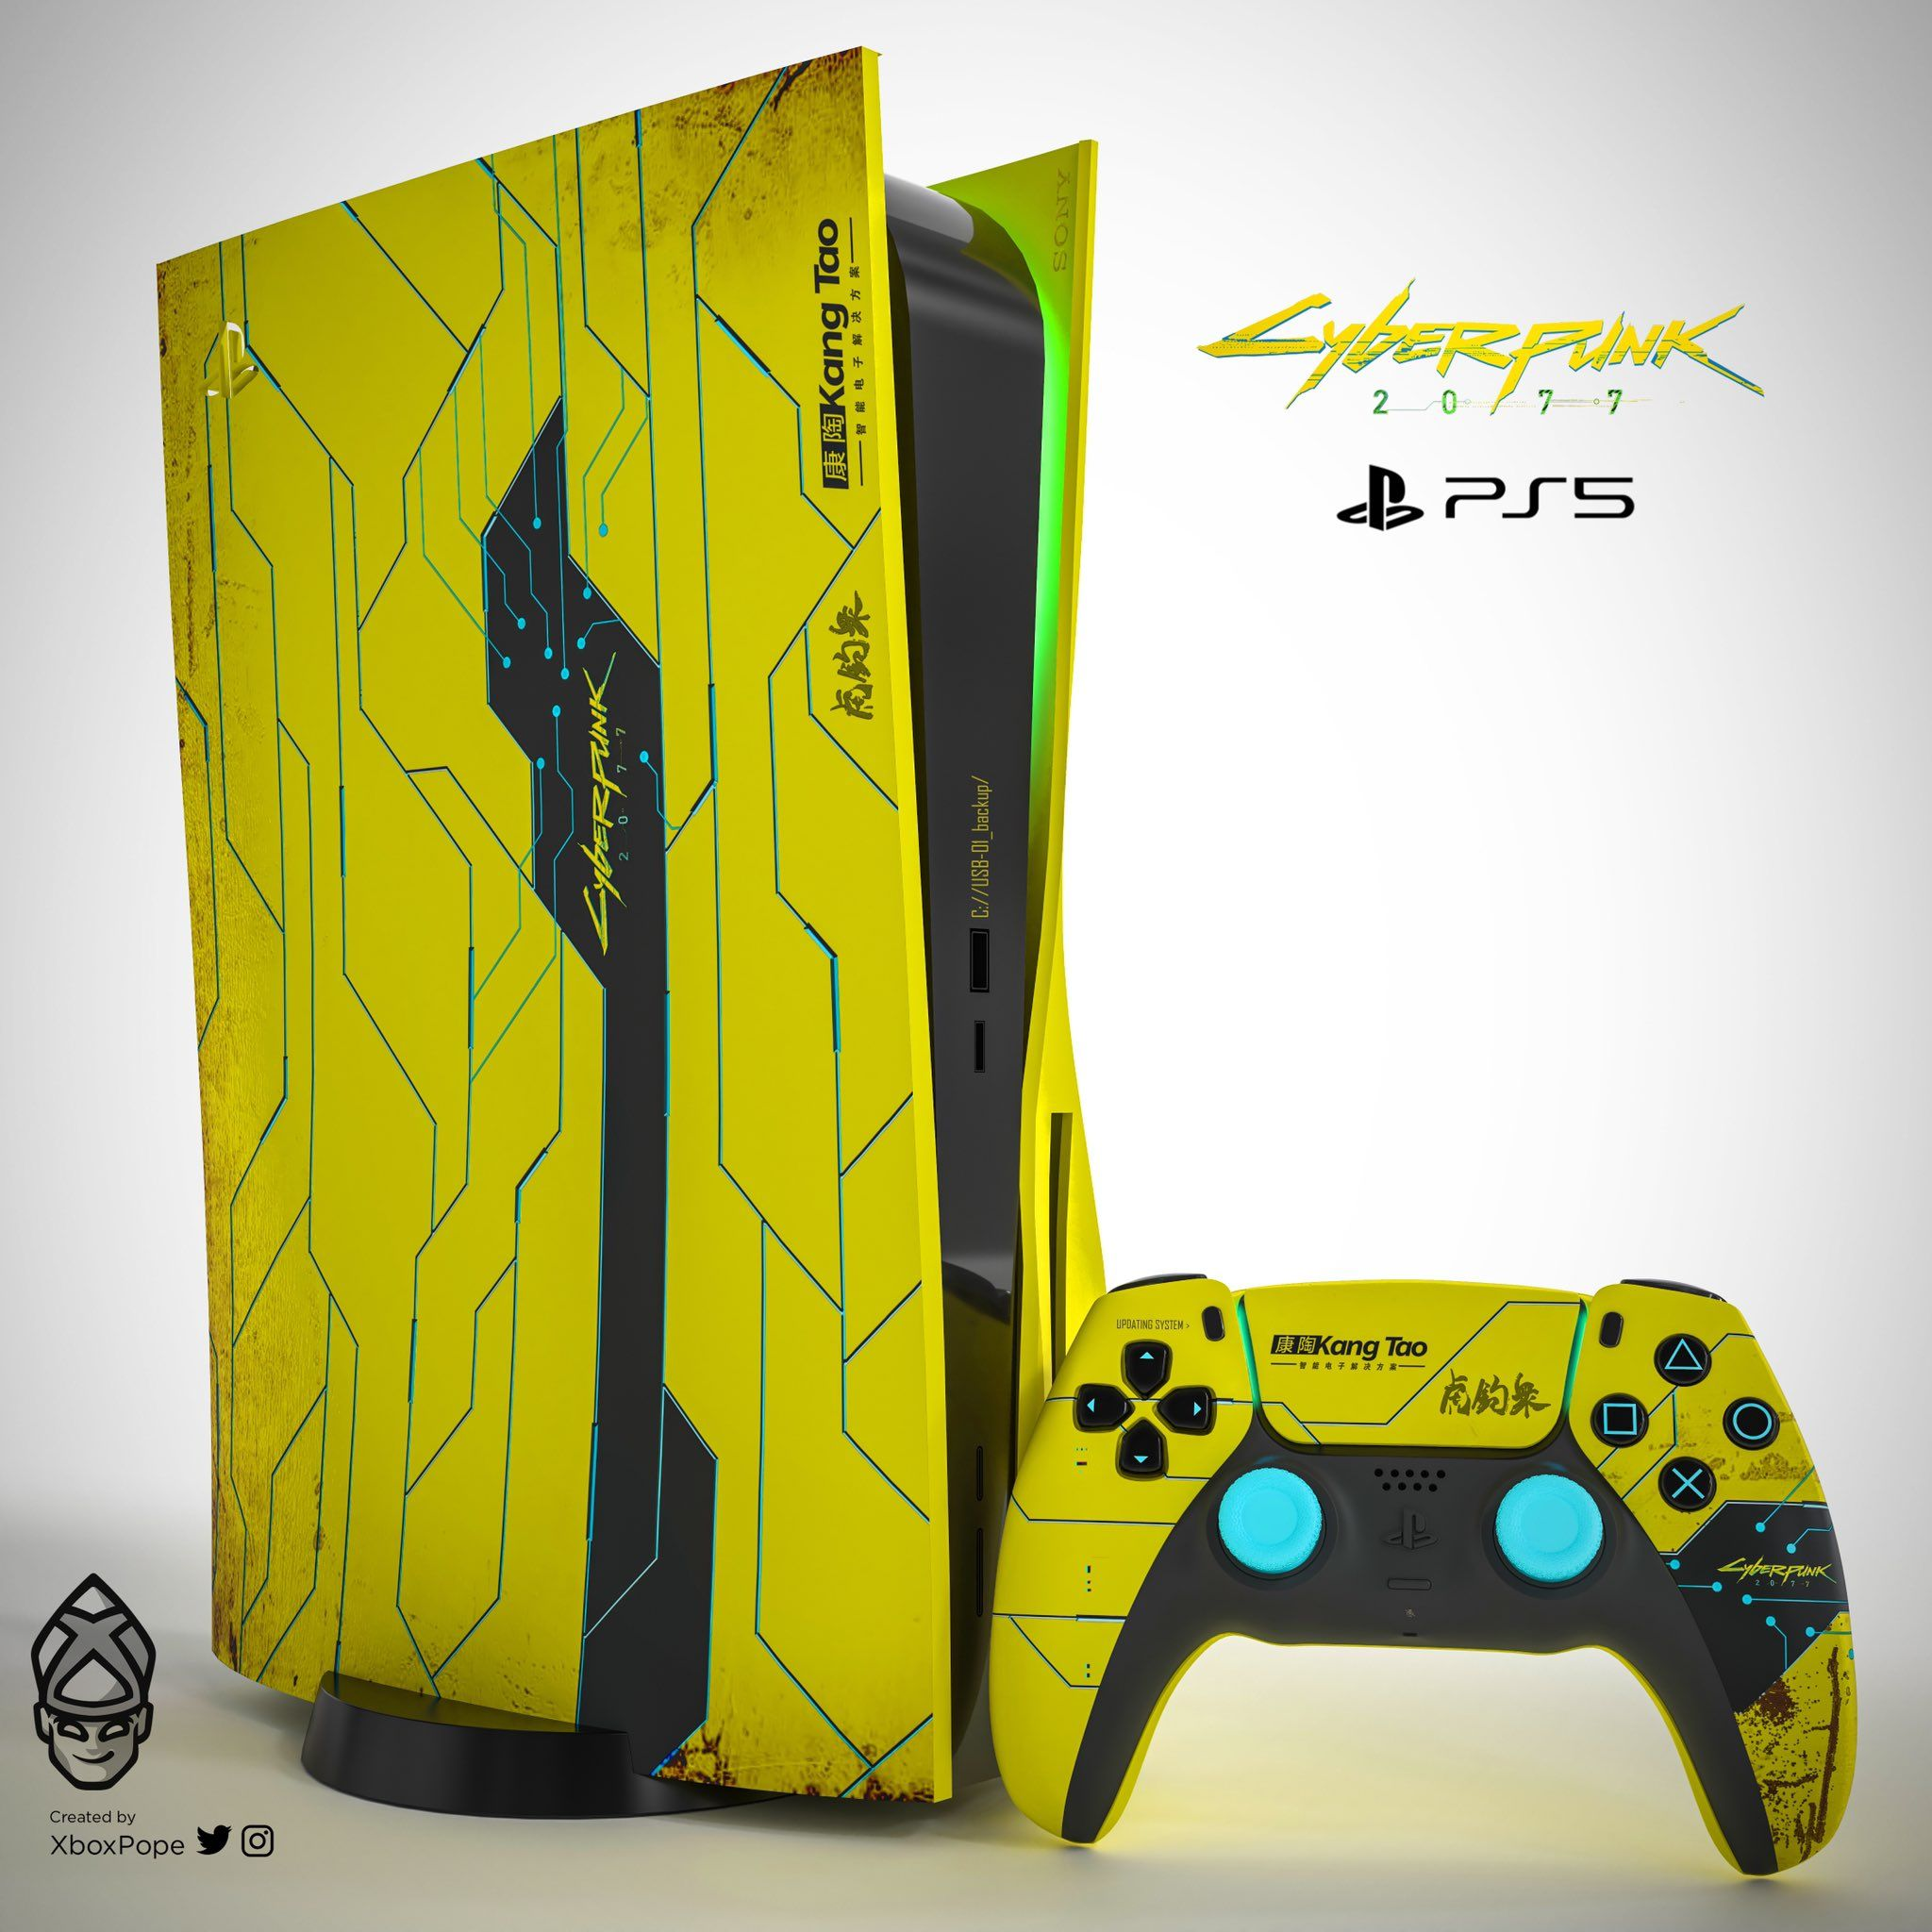 28 Xbox Series X And Ps5 Skins That Are A Bit Much Cyberpunk 2077 Playstation 5 Playstation